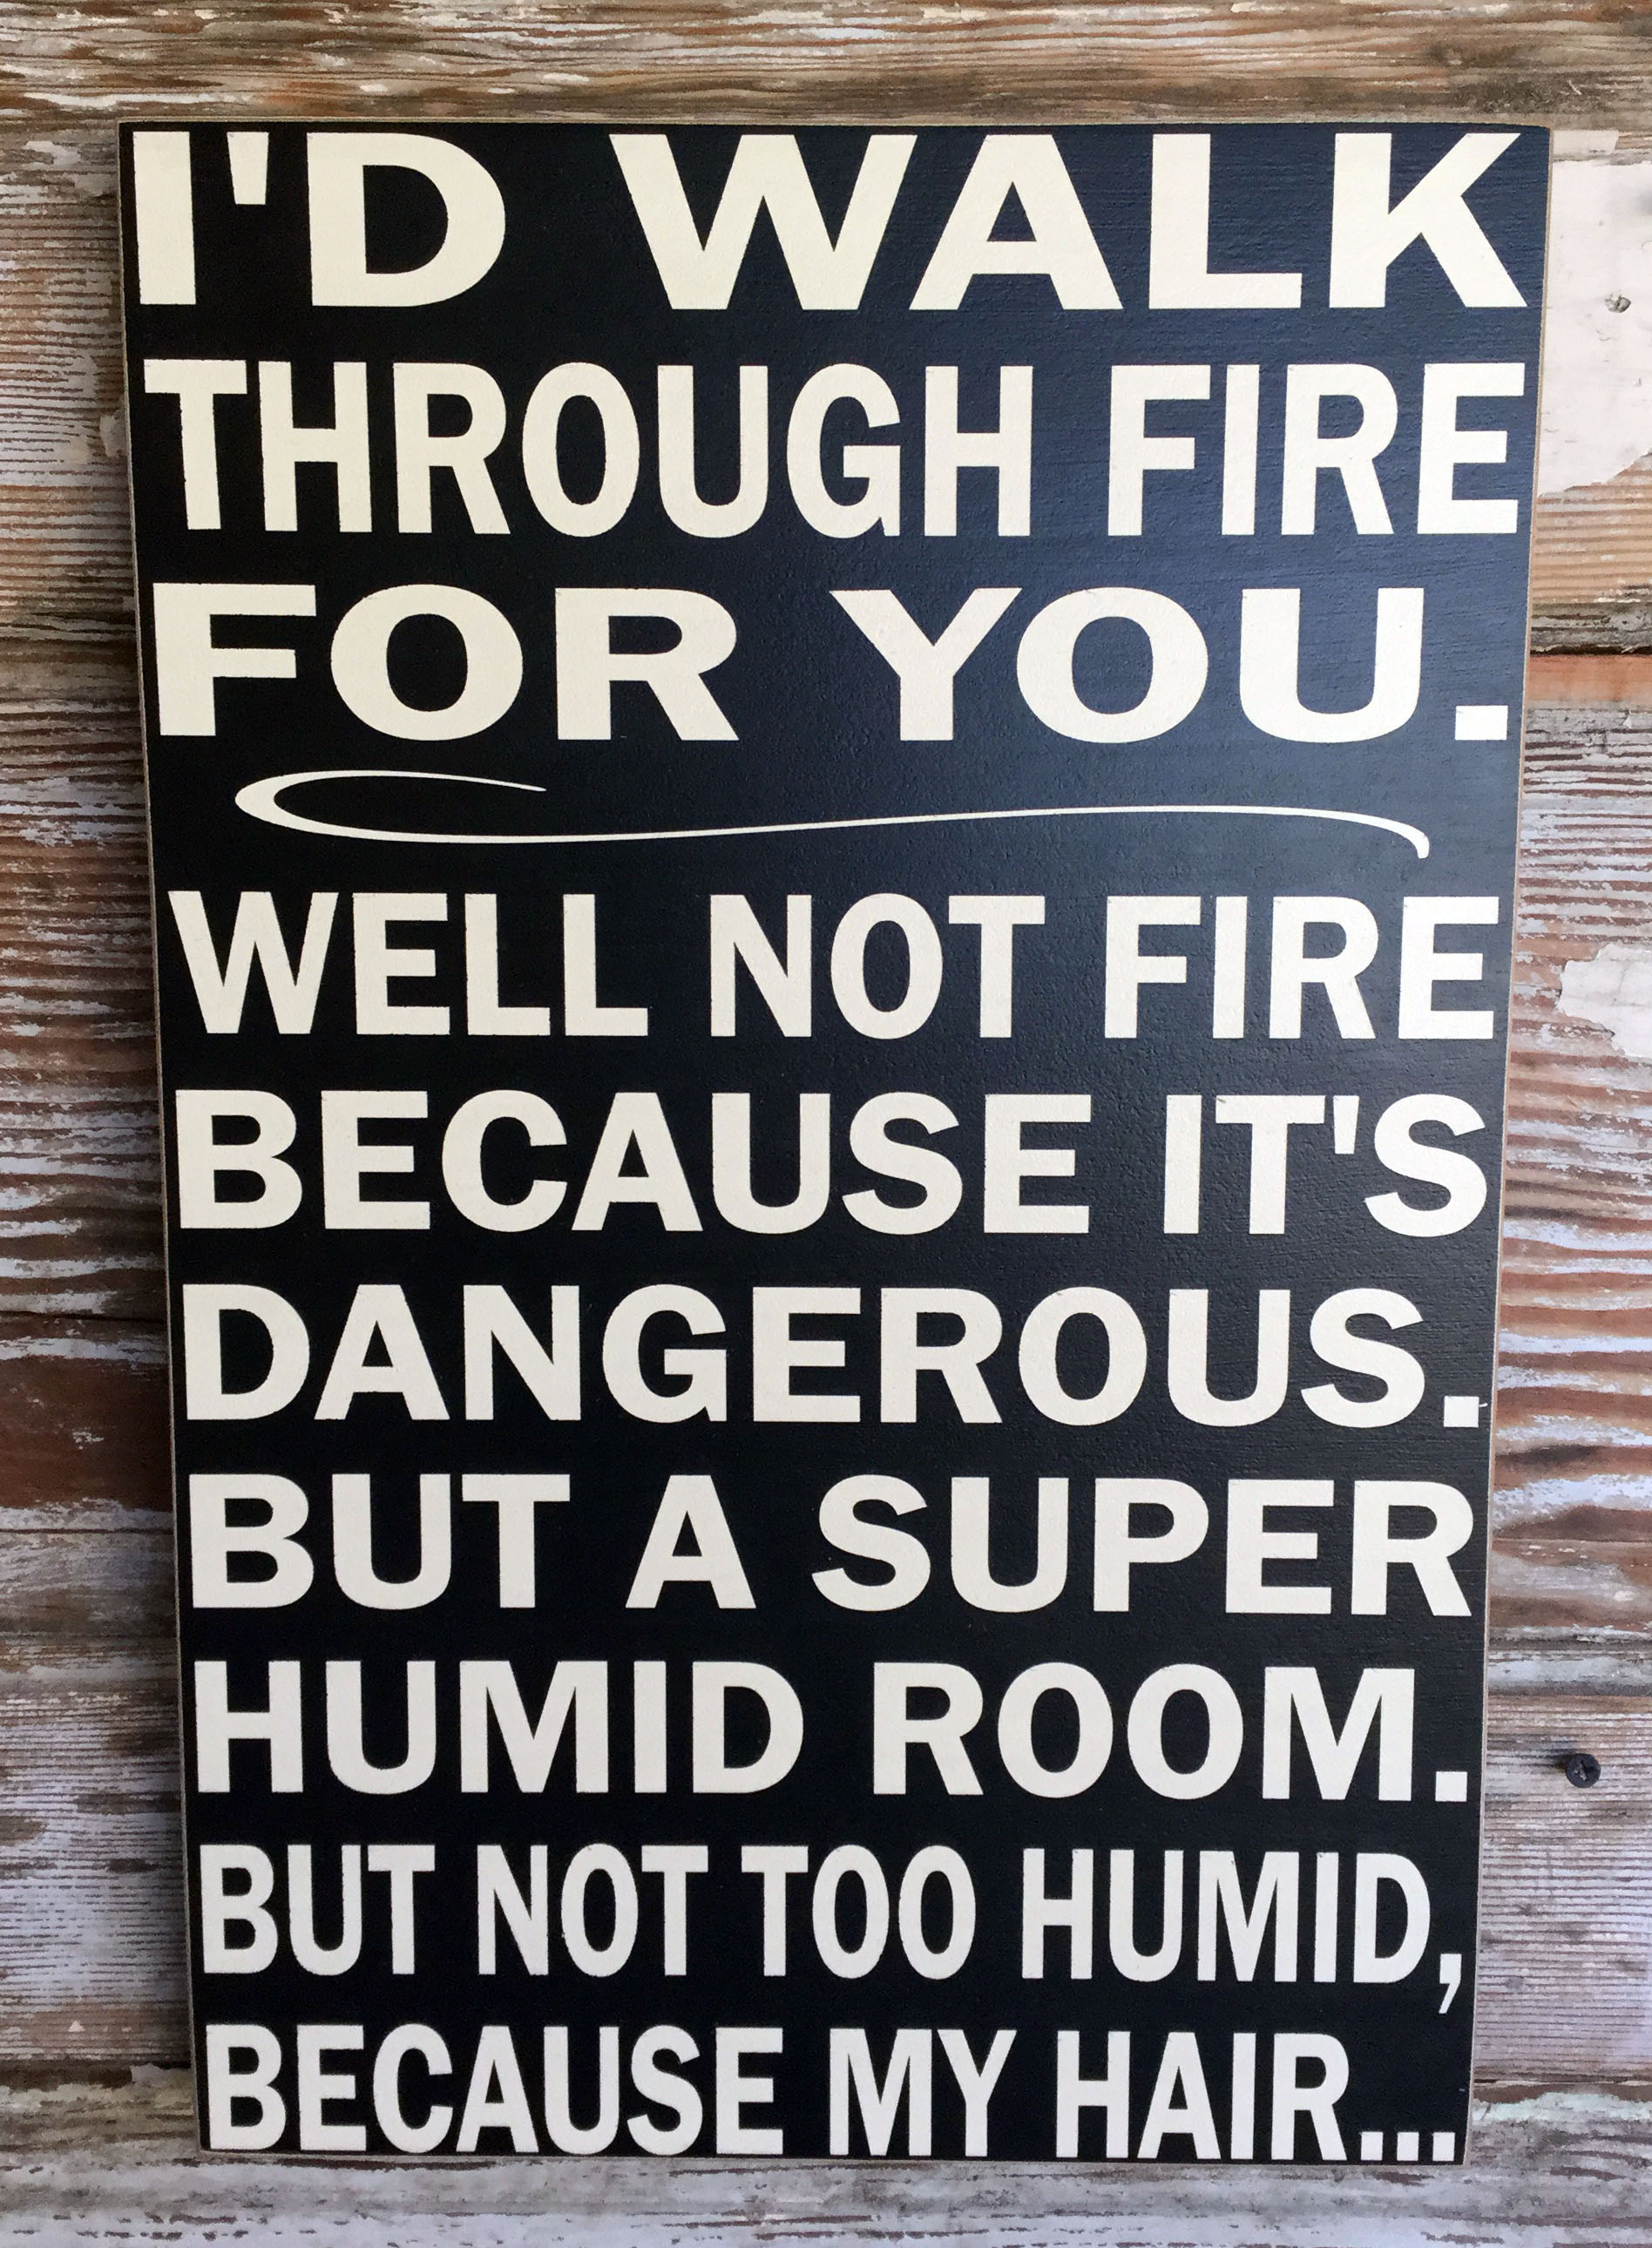 I'd Walk Through Fire For You.  Well Not Fire Because It's Dangerous.  But A Super Humid Room.  But Not Too Humid, Because My Hair...  Wood Sign